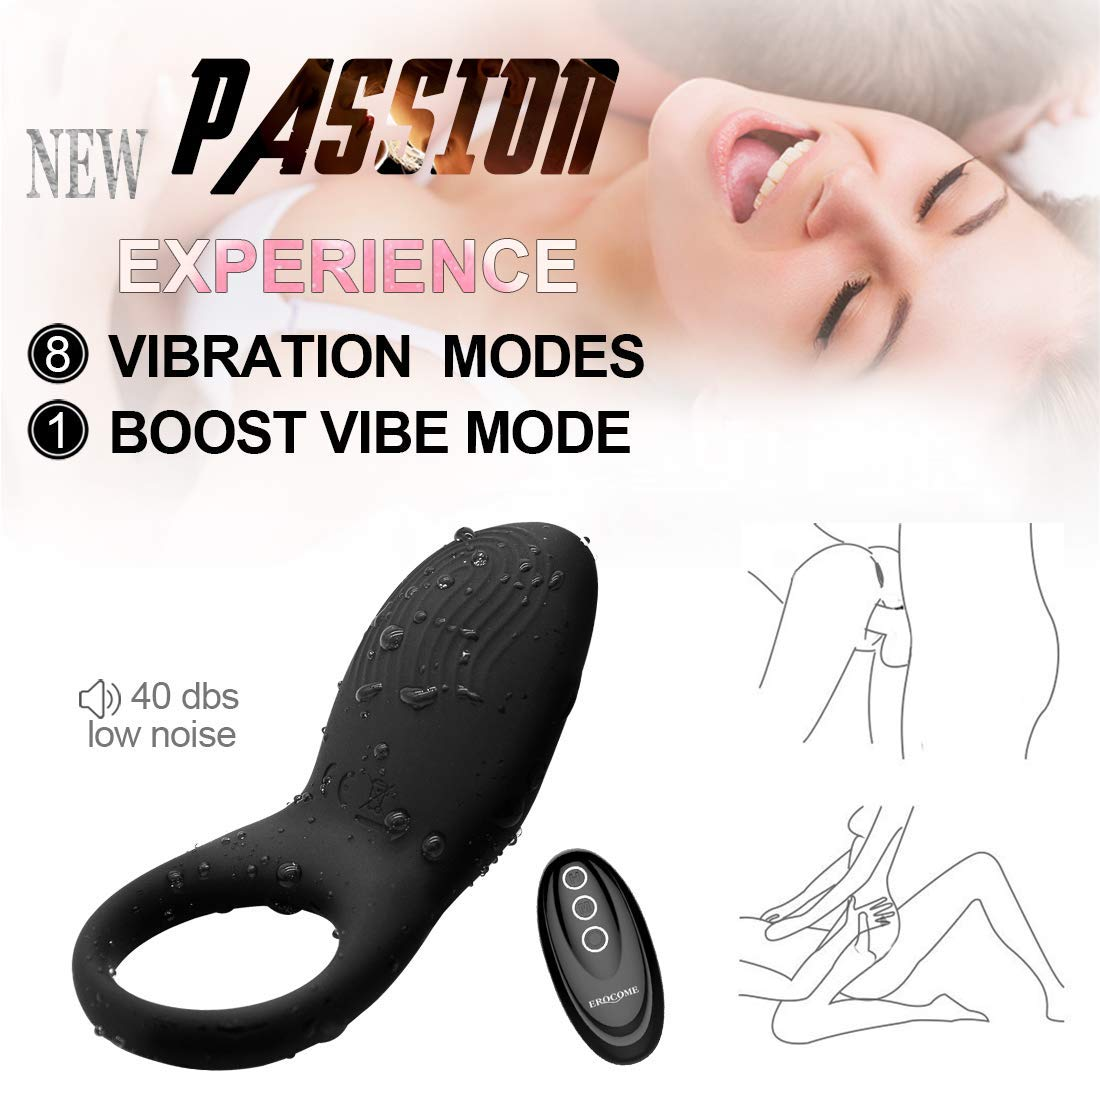 Waterproof Massage Tools 8 Speed Vibration Modes USBRechargeable Male Ring Massage with Remote Control Adult Toys for Men and Couple.